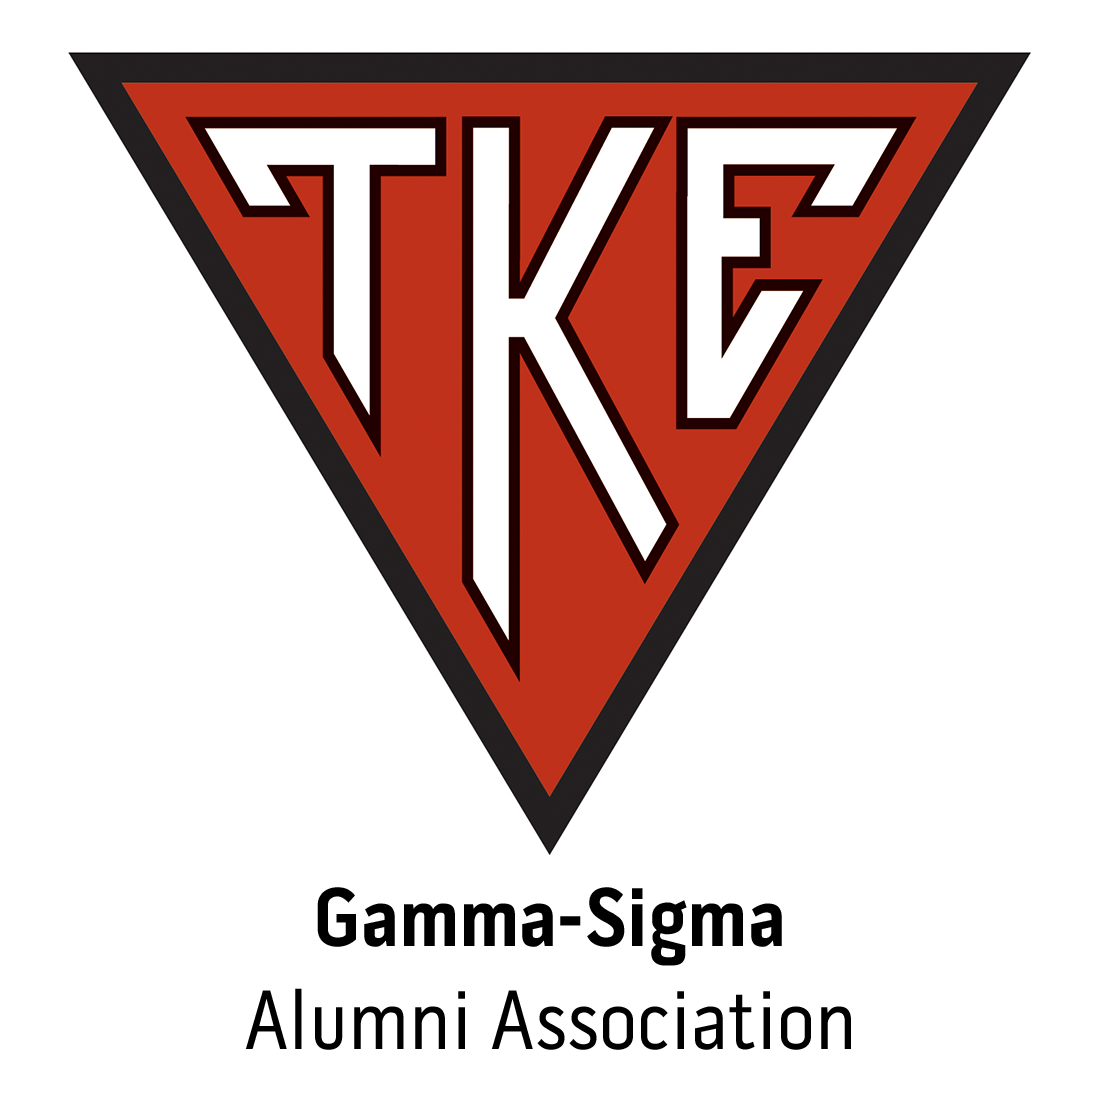 Gamma-Sigma Alumni Association at University of Kentucky